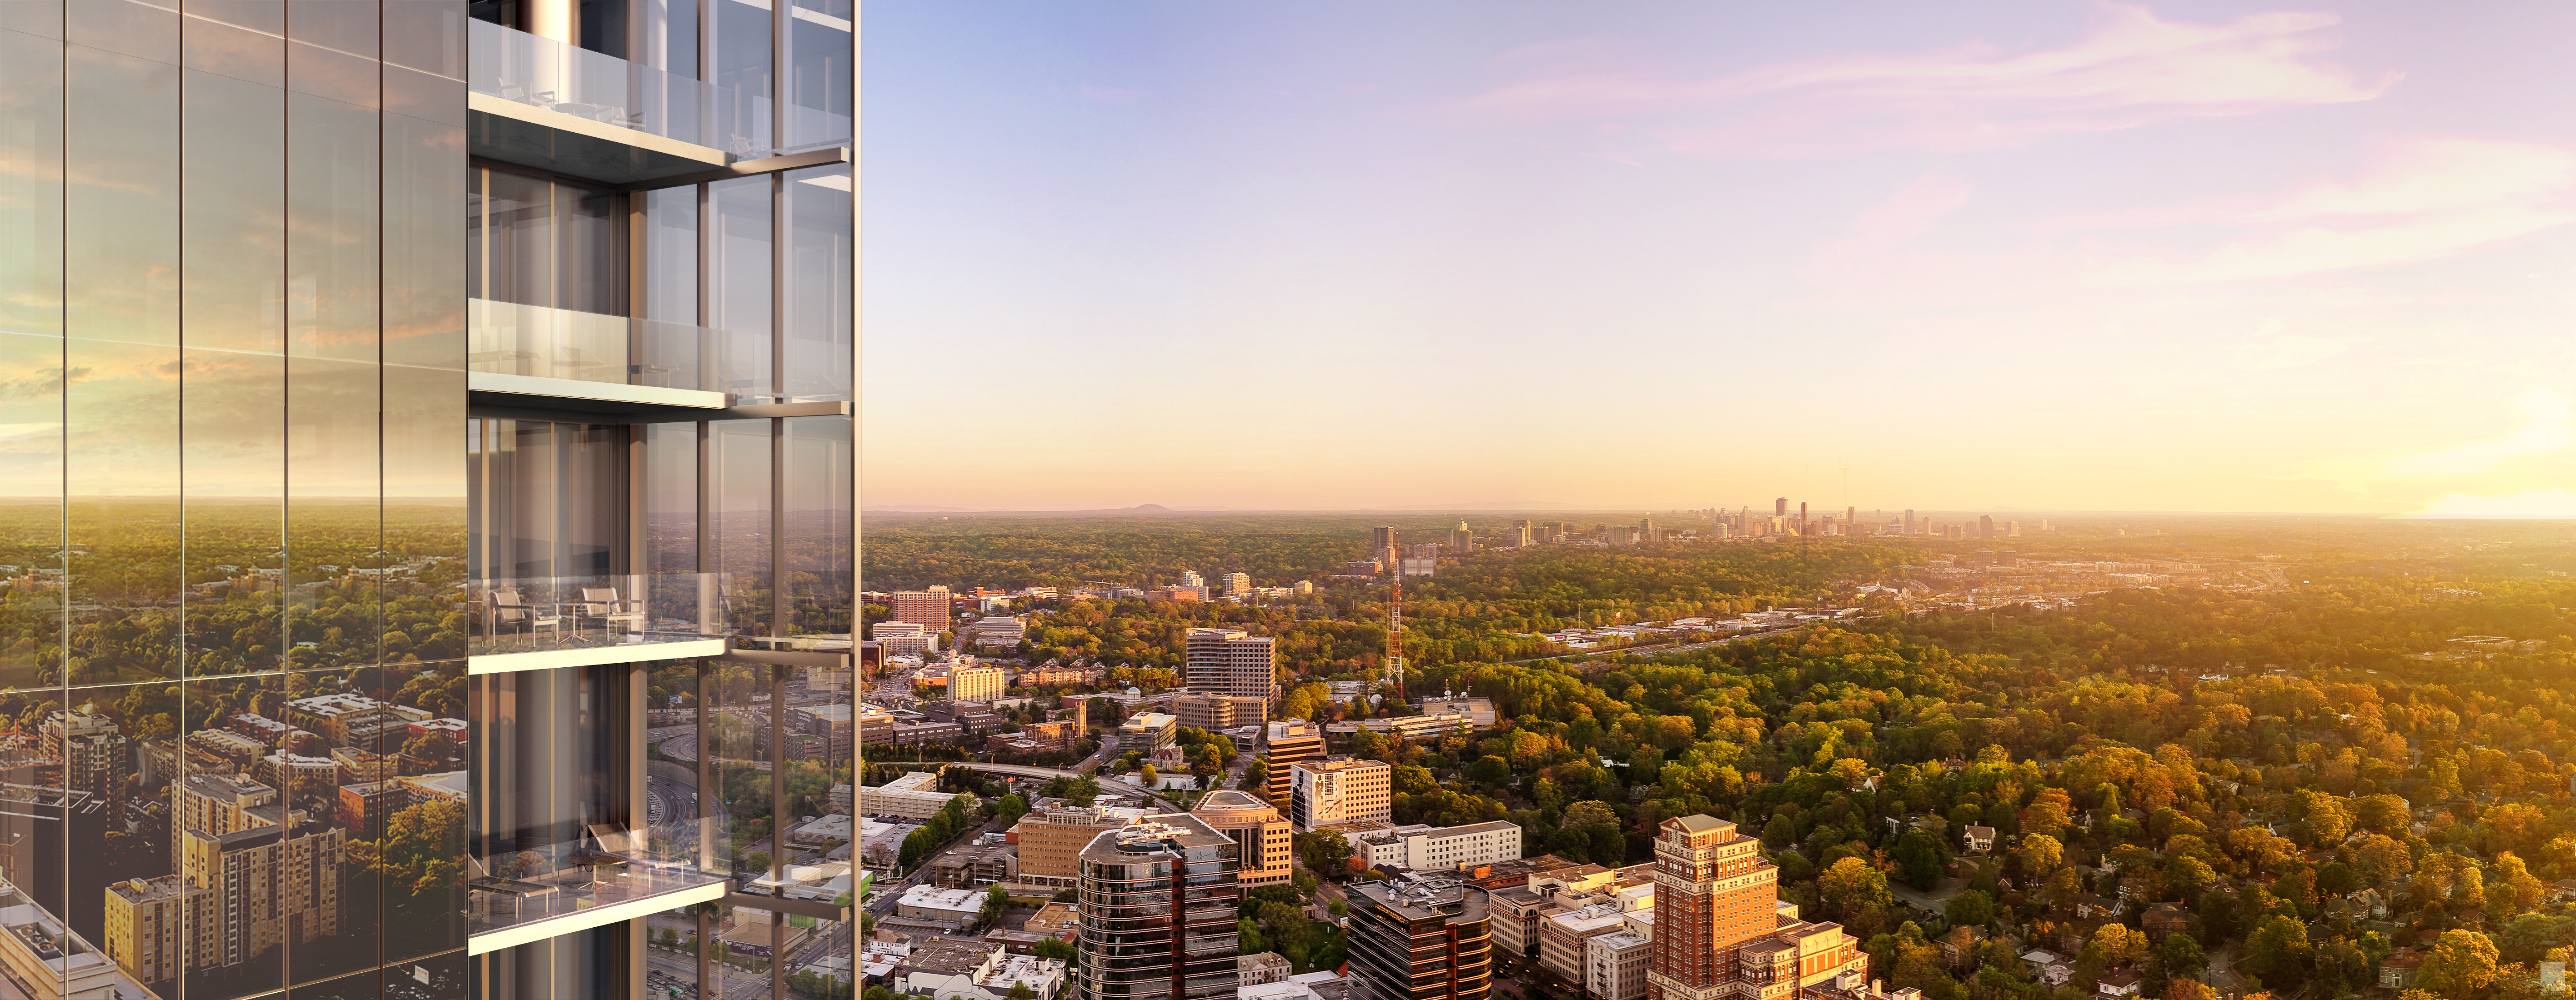 No2 opus place exclusive renderings details for atlanta for Apartments near mercedes benz stadium